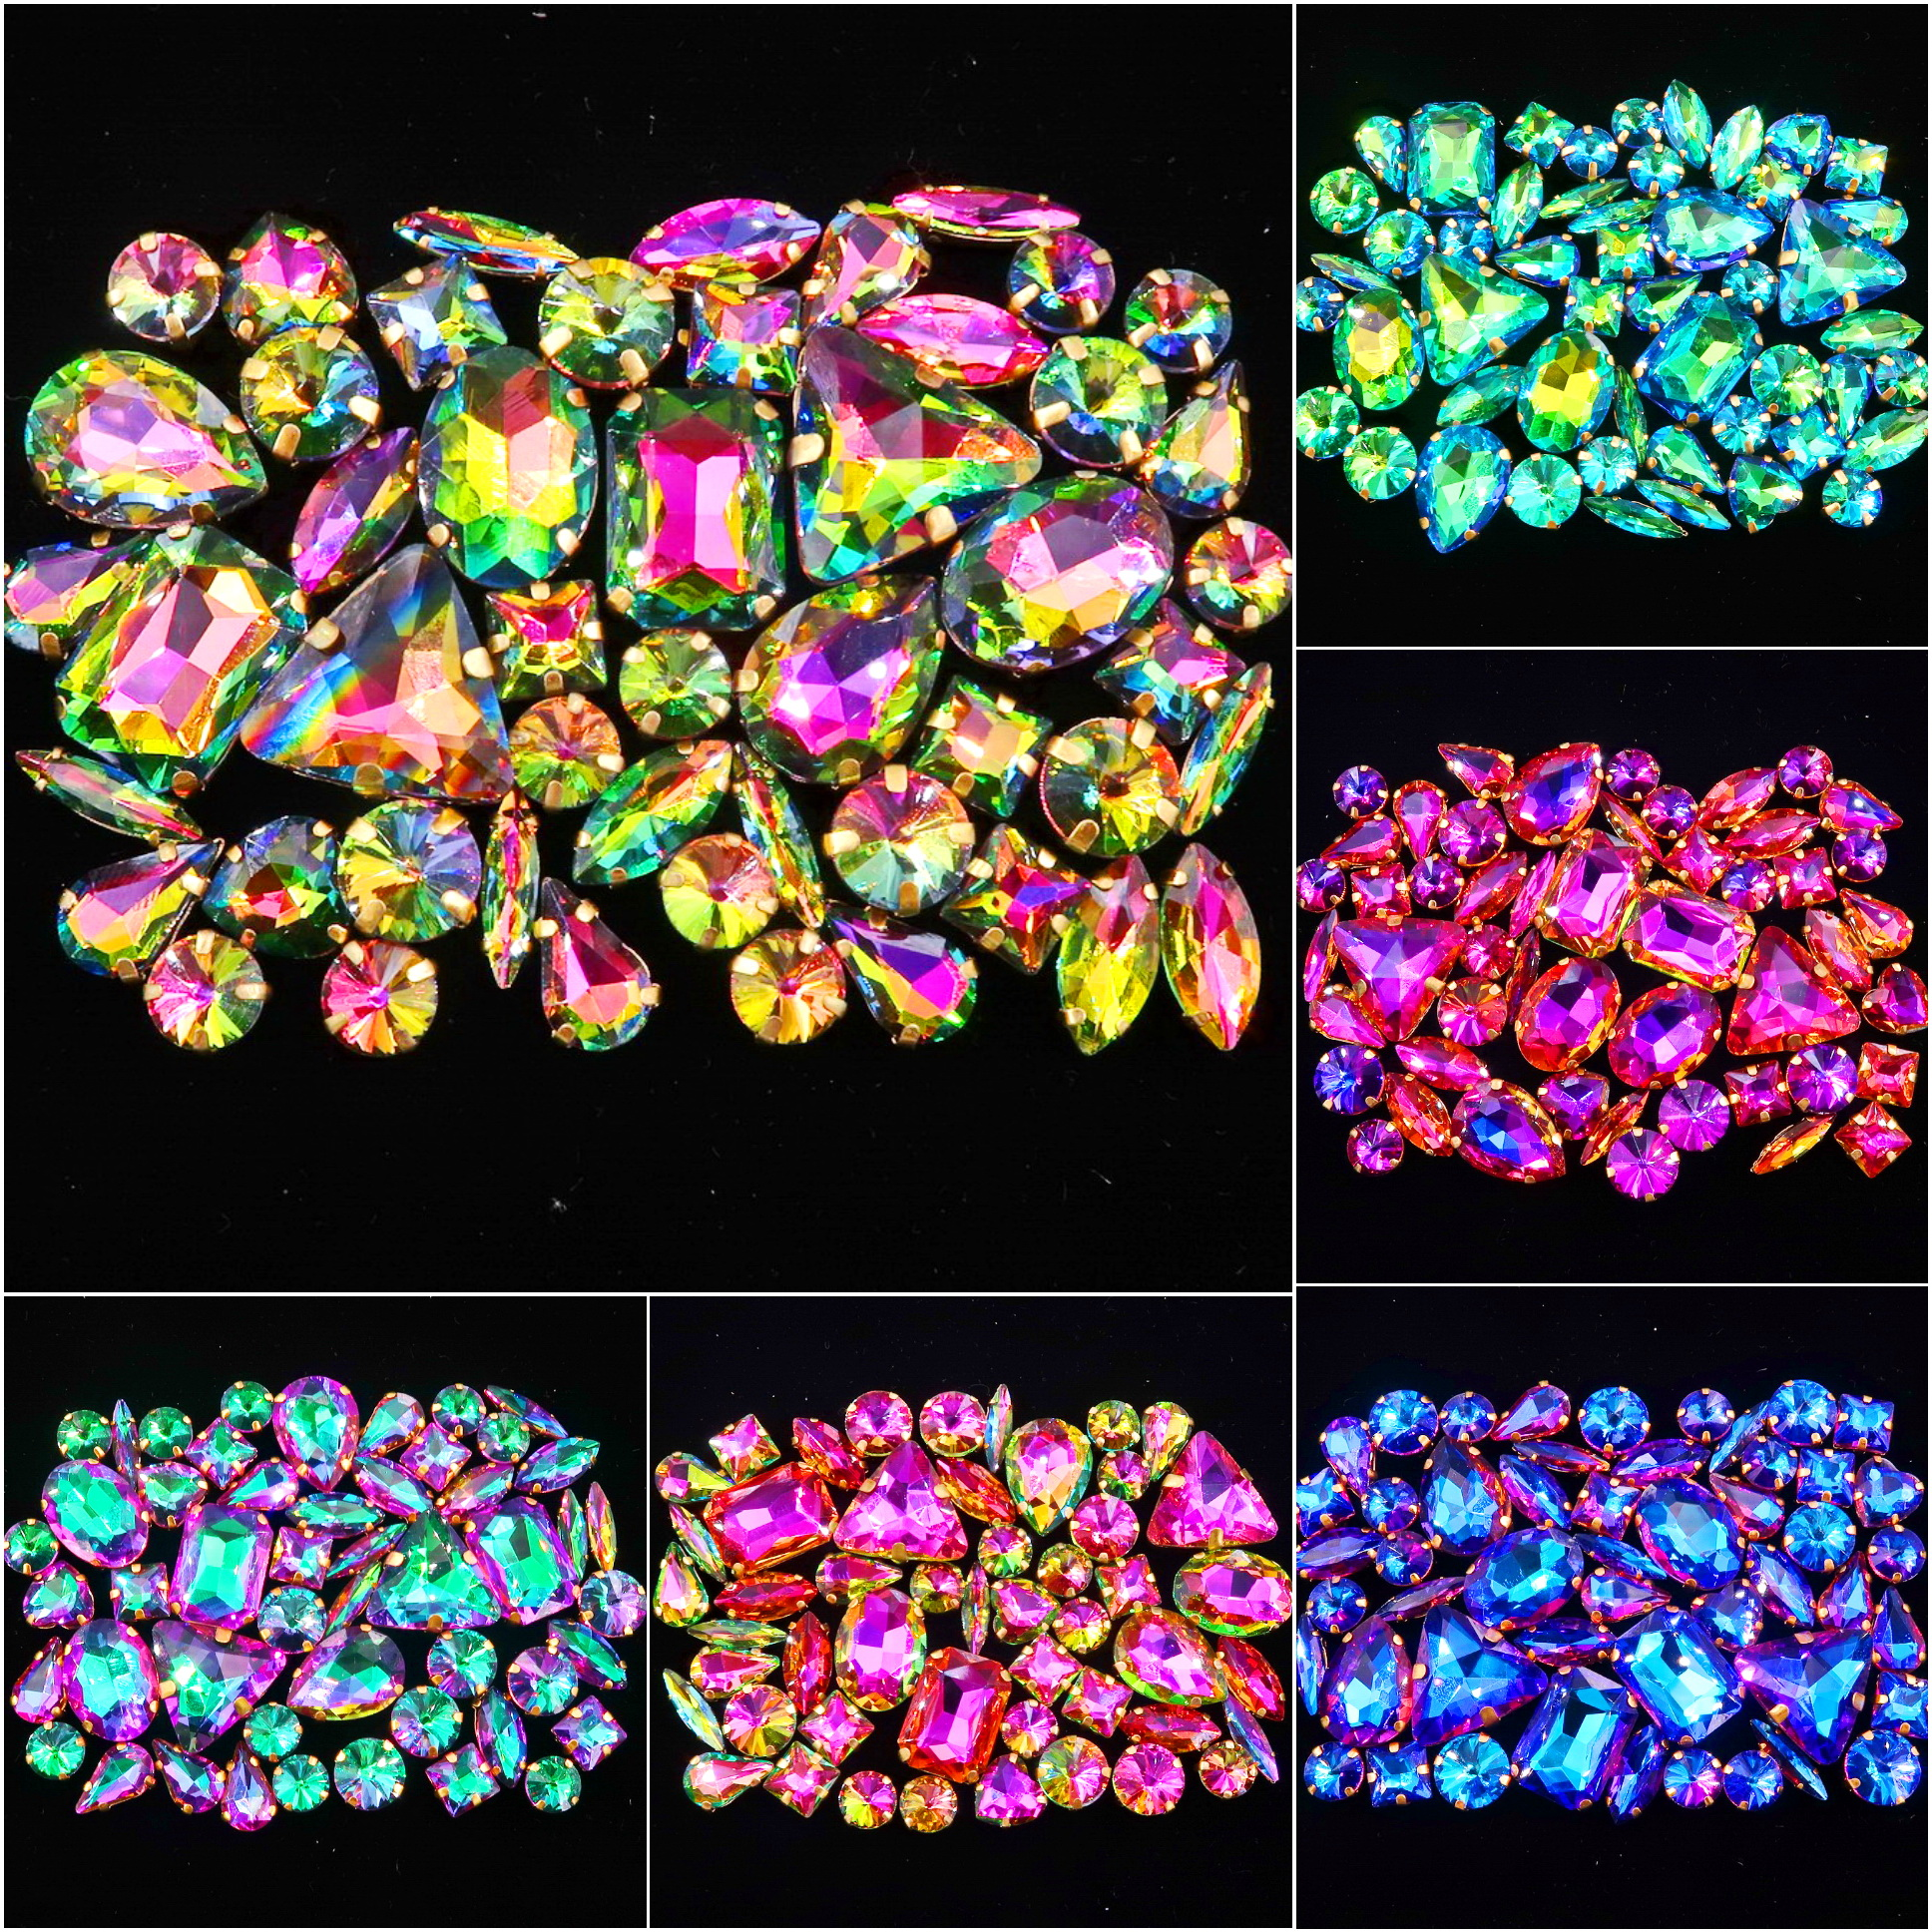 Gold claw settings 50pcs/bag shapes mix rainbow & jelly candy AB glass crystal sew on rhinestone garments shoes bags diy trim title=